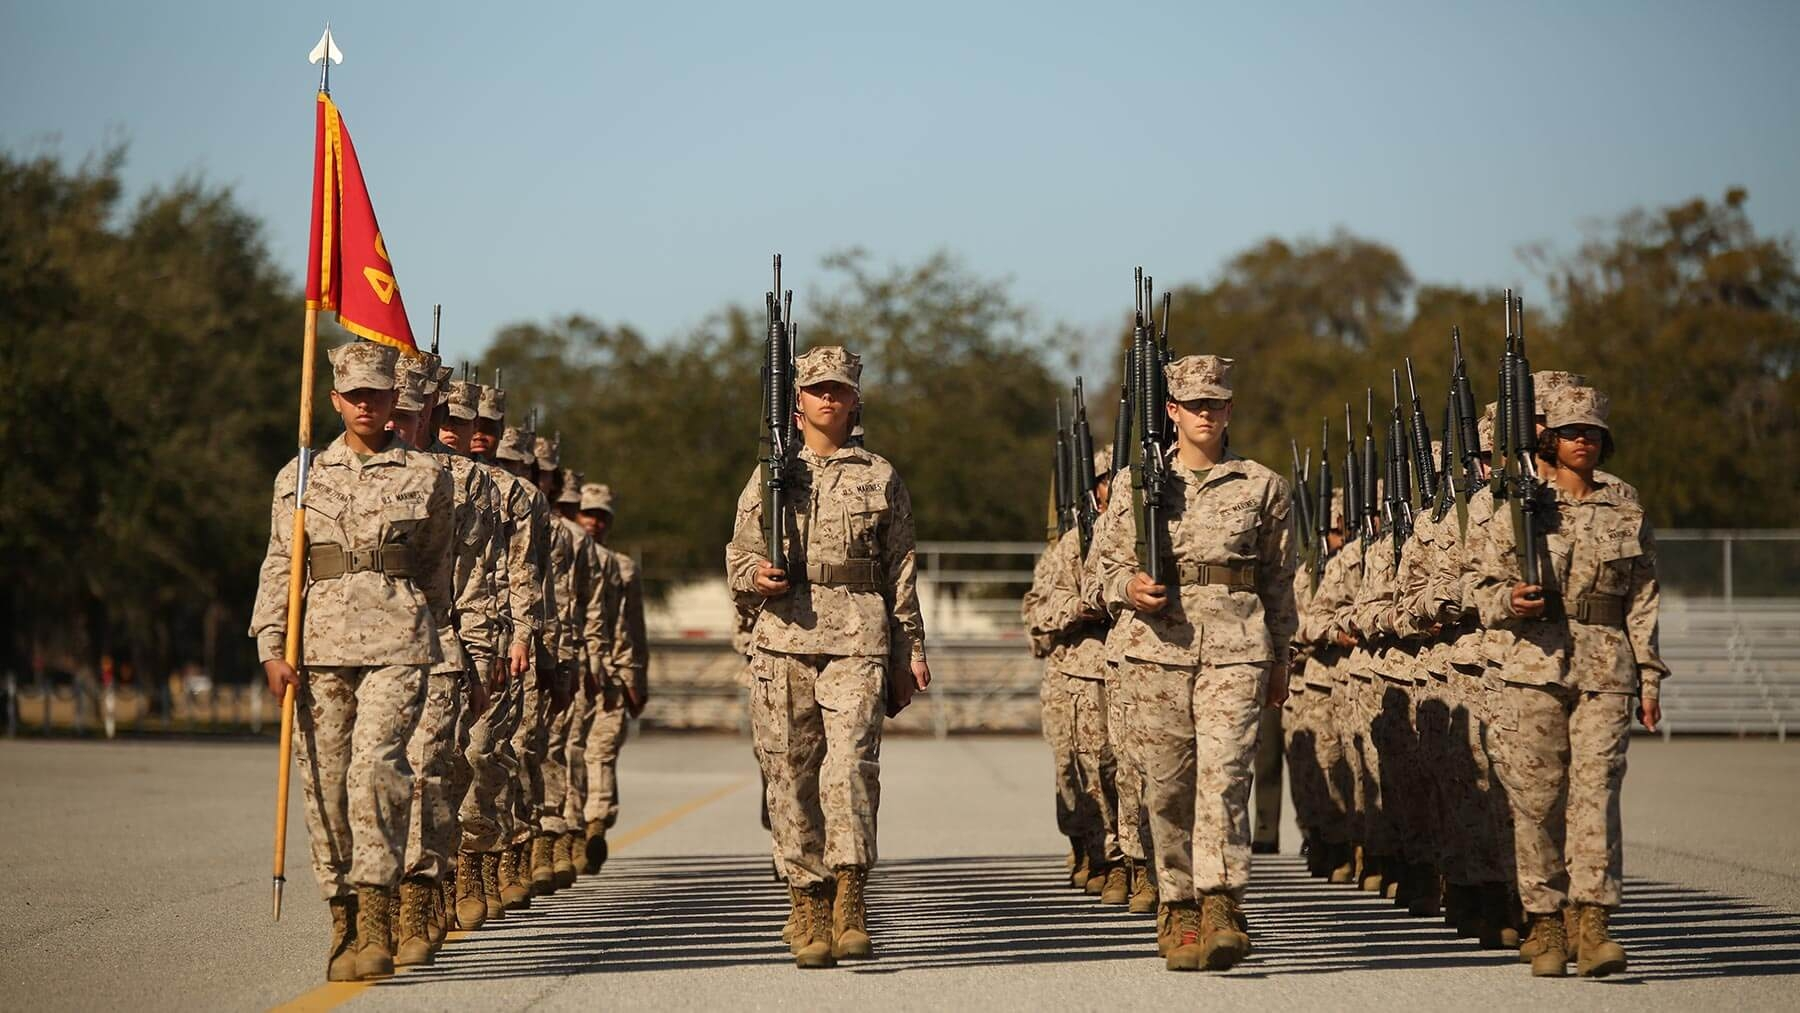 A platoon female Marine recruits marches at recruit training.